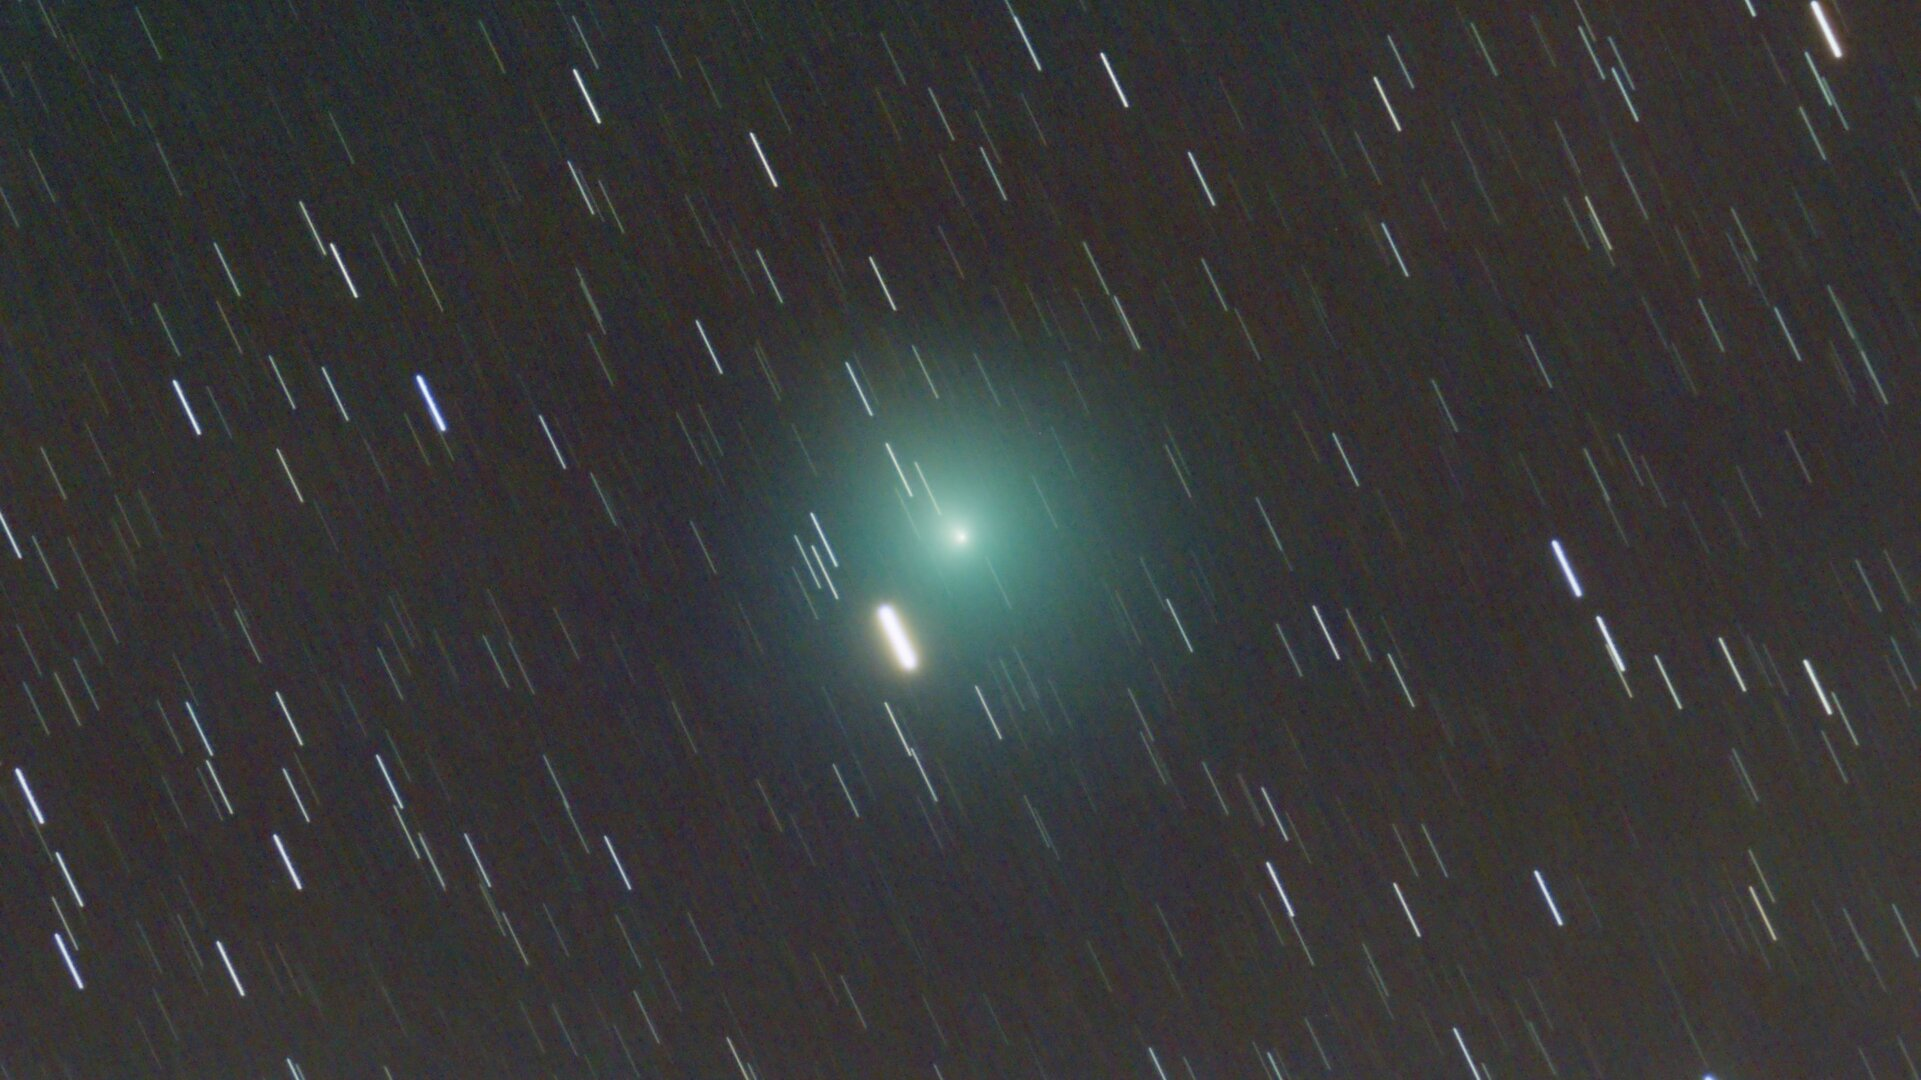 Comet from Madrid